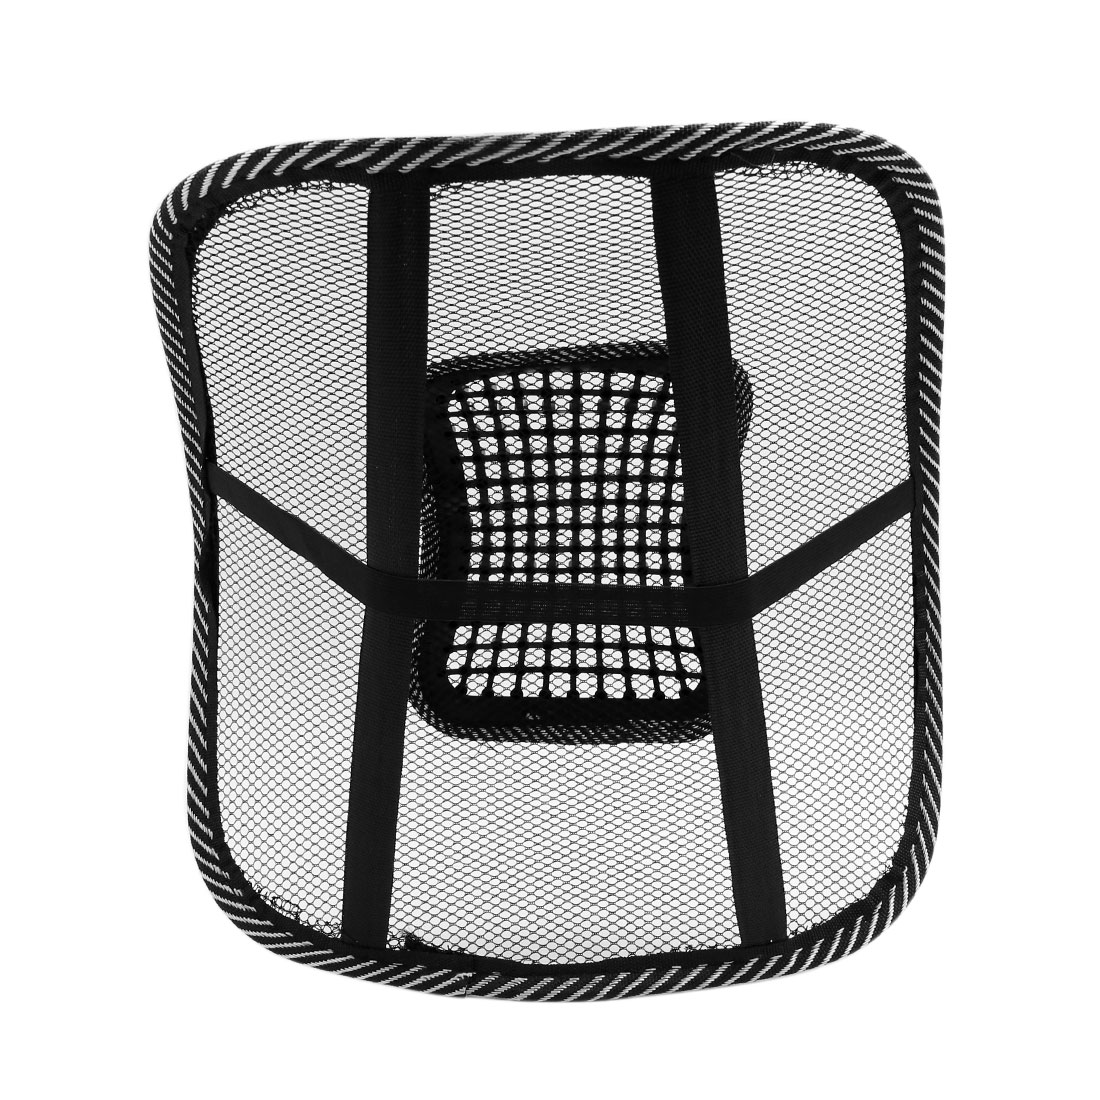 Black White Waist Lumbar Massage Mesh Cushion Back Support Pad for Car Office - image 1 of 5